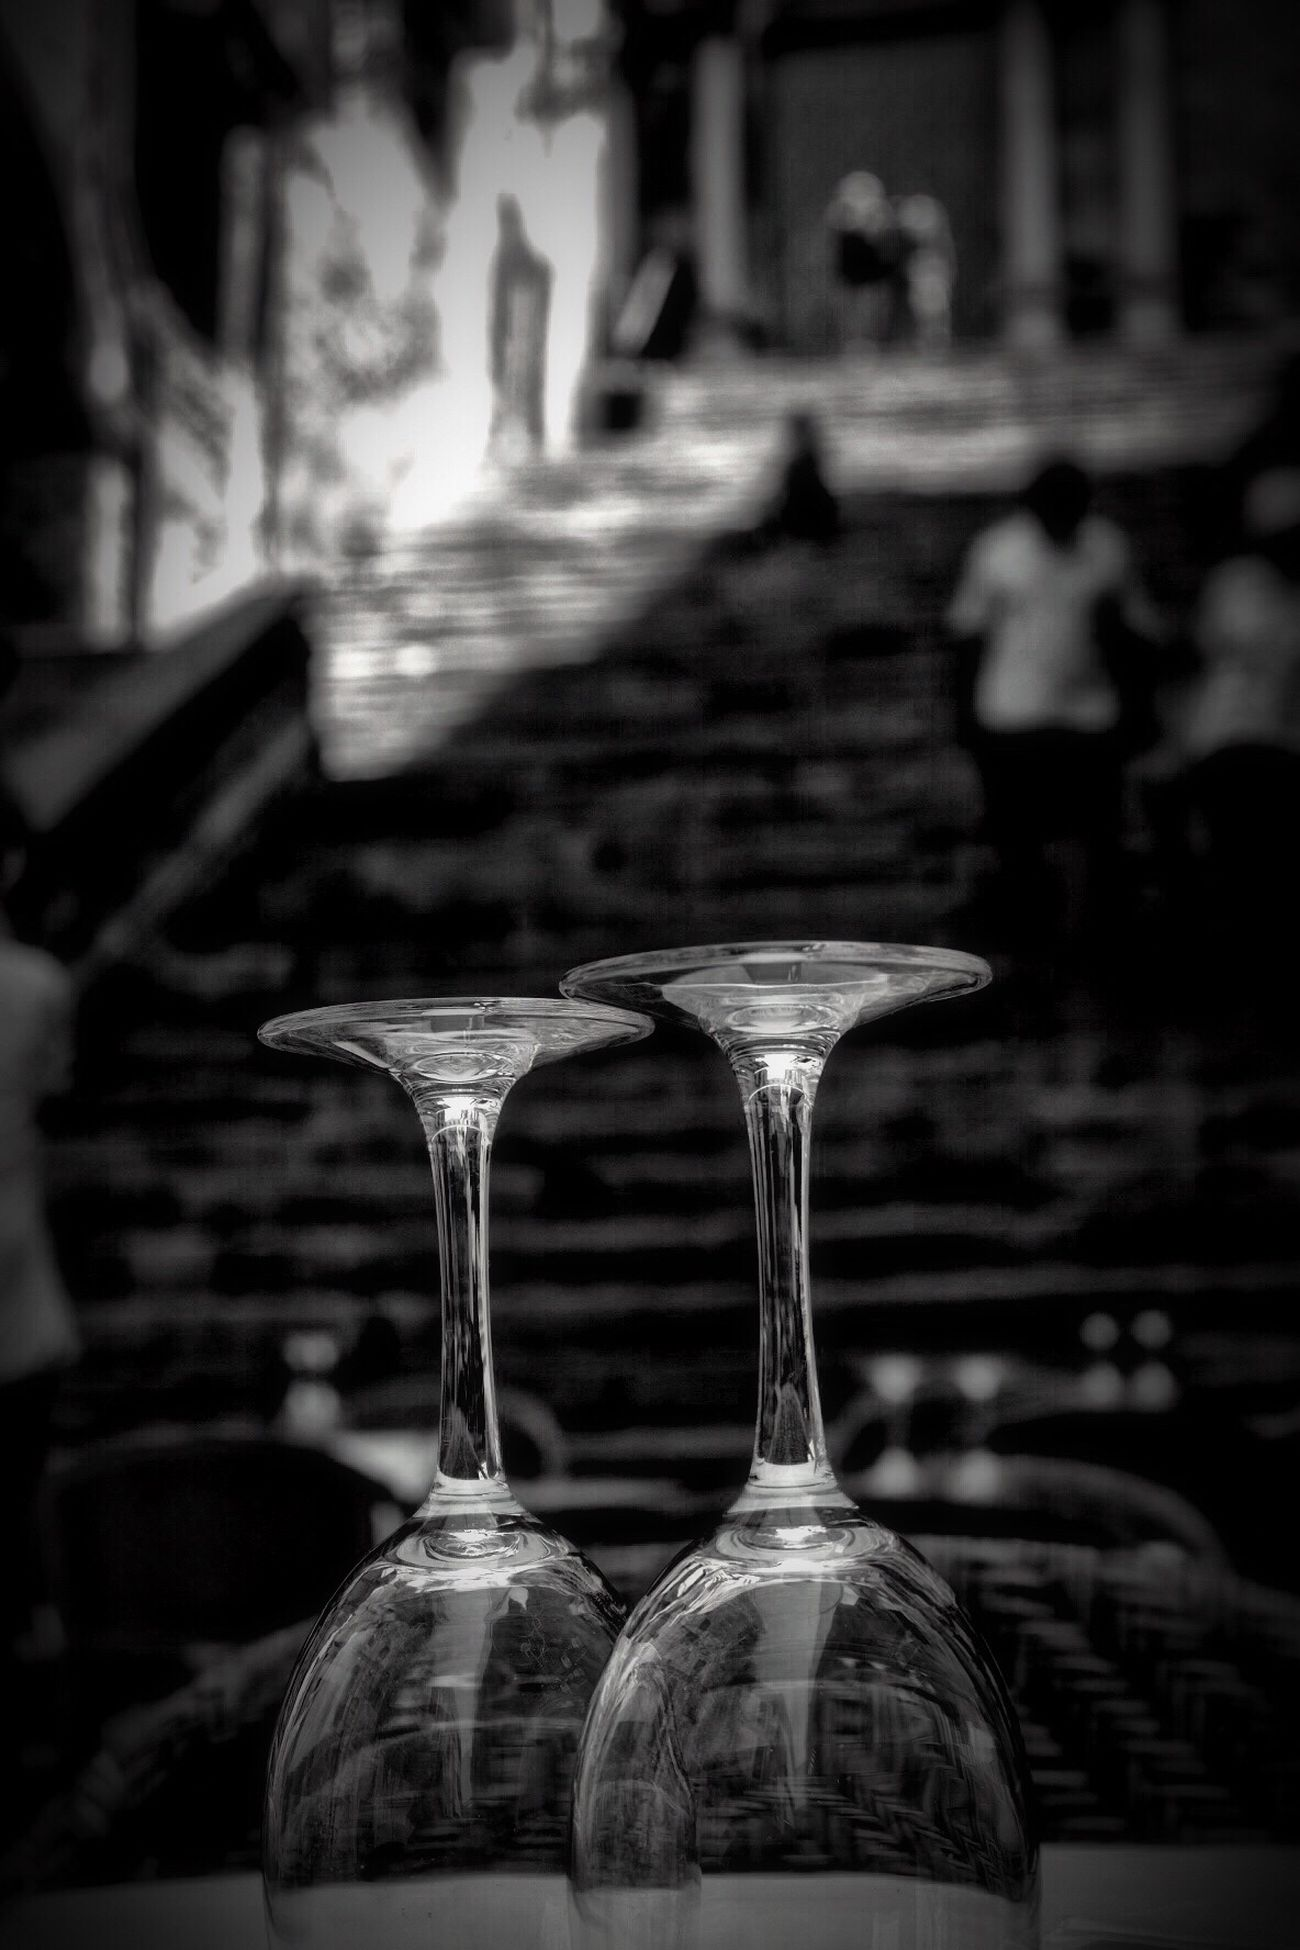 Focus On Foreground Indoors  No People Table Built Structure Close-up Drink Day Architecture Fujifilm Myfujifilm Blackandwhite